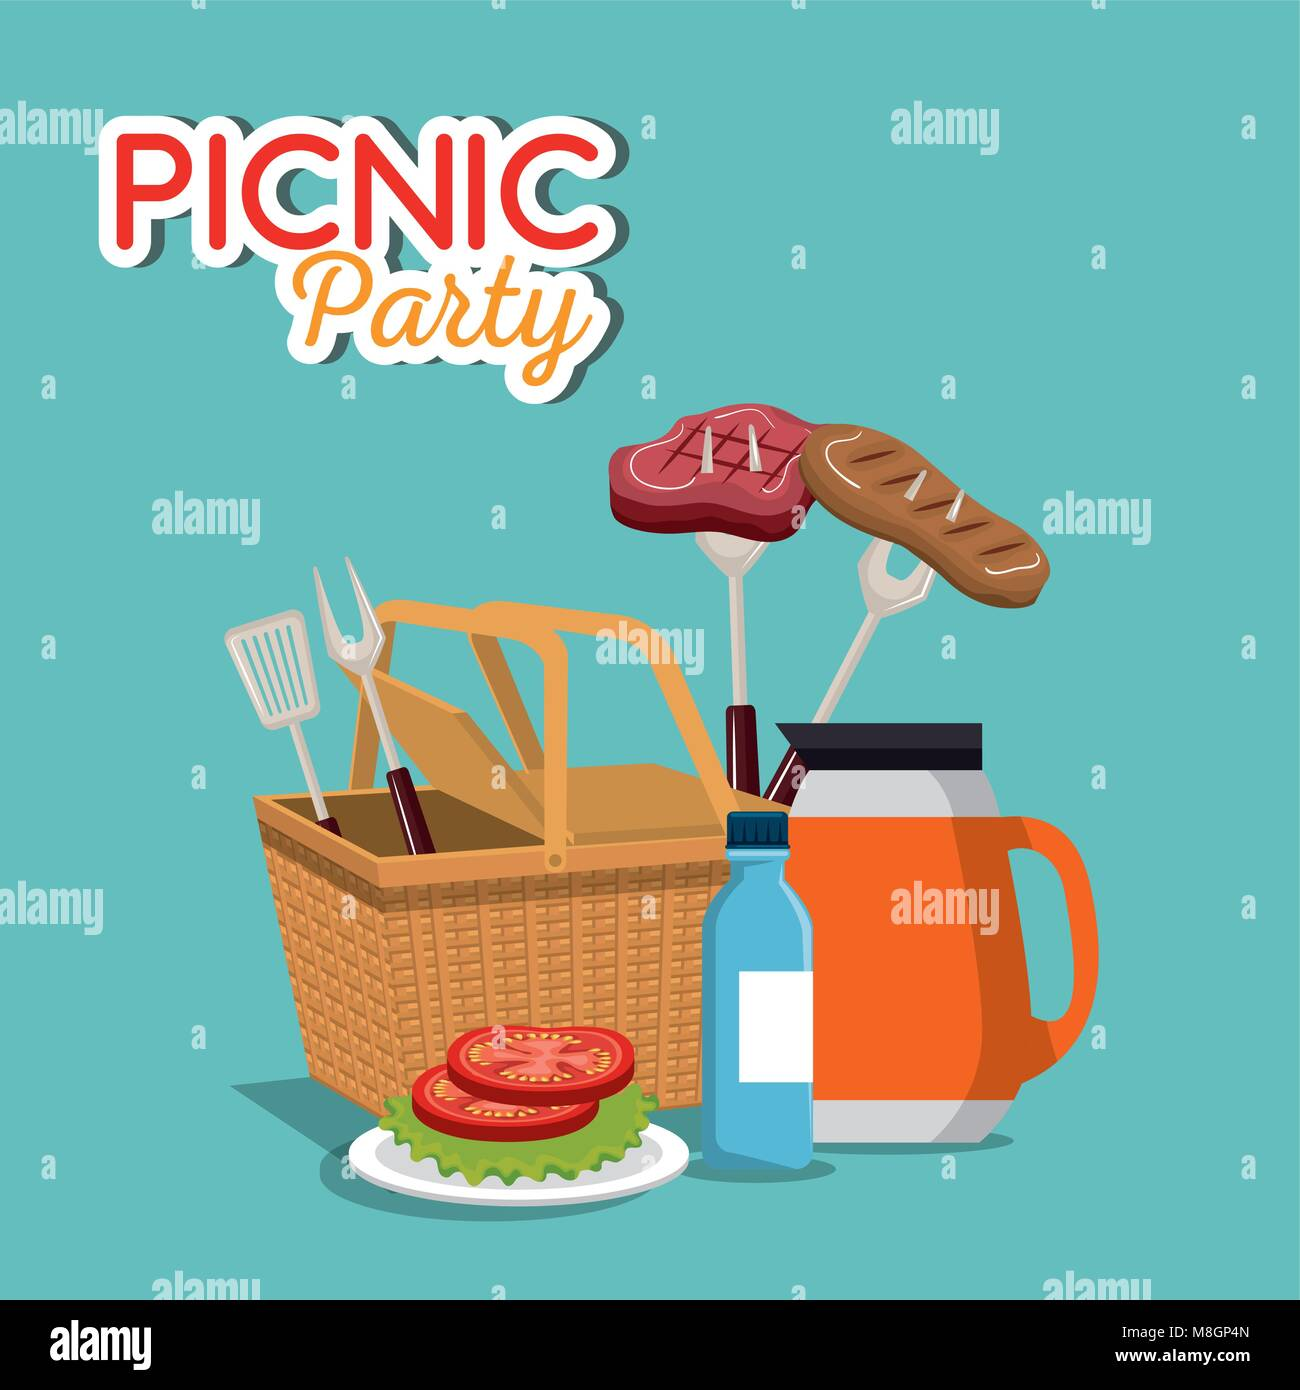 Picnic party invitation set icons vector illustration design stock picnic party invitation set icons vector illustration design stopboris Choice Image